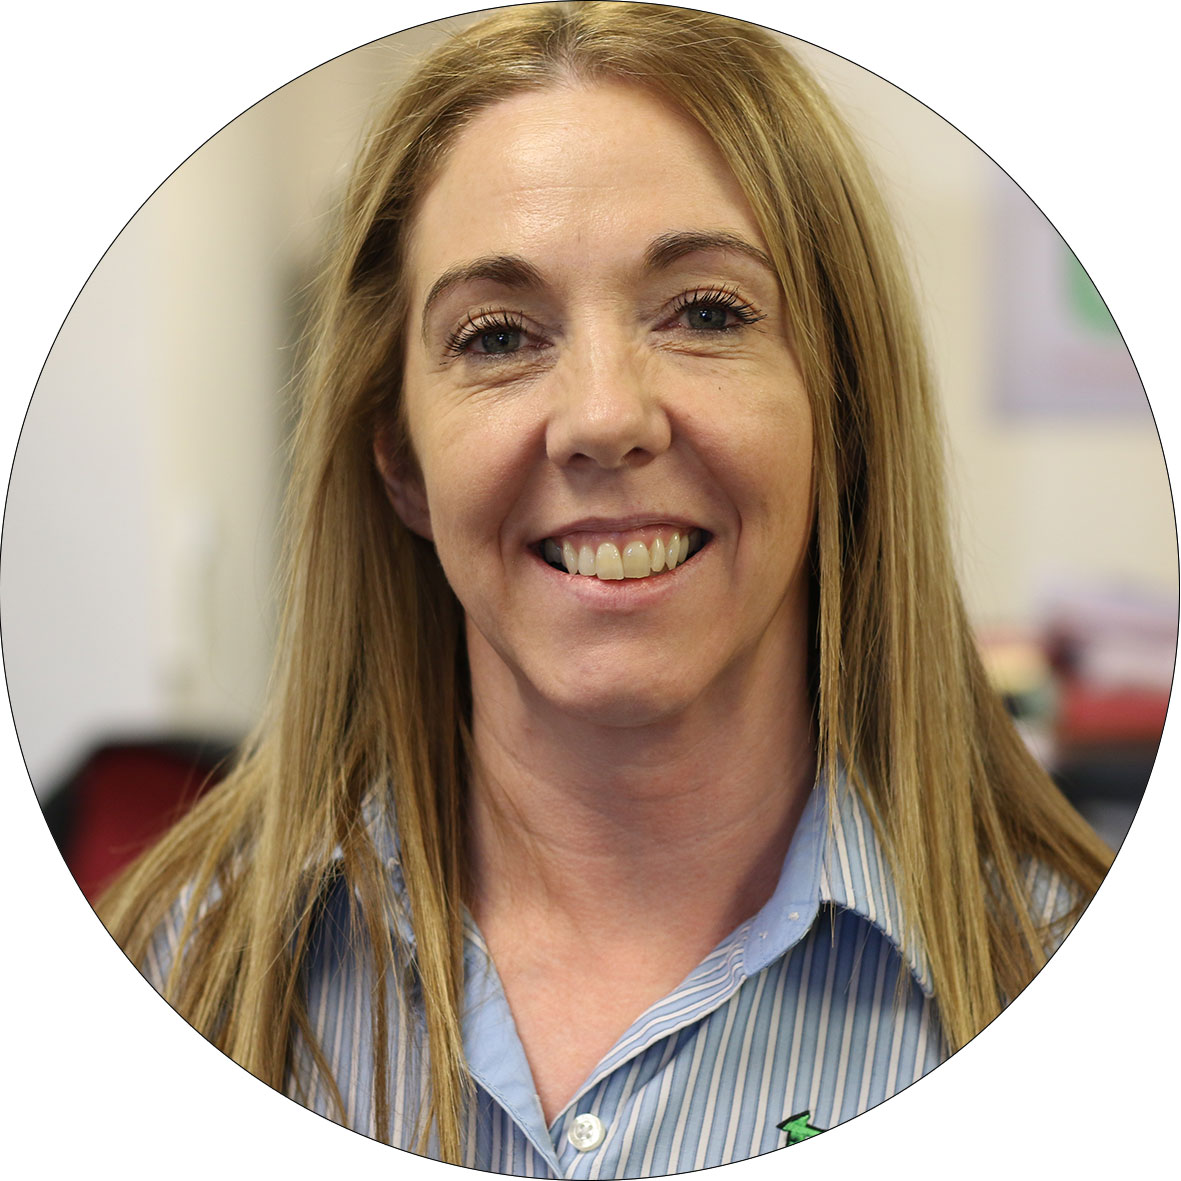 SANDRA MONTGOMERY - INTERNAL SALES MANAGERSandra is responsible for the internal sales and customer services team and is the main point of contact for our customers, agents and distributors. She has been with TTC for 24 years.smontgomery@ttc-colours.comT: +44 (0)28 9045 1396